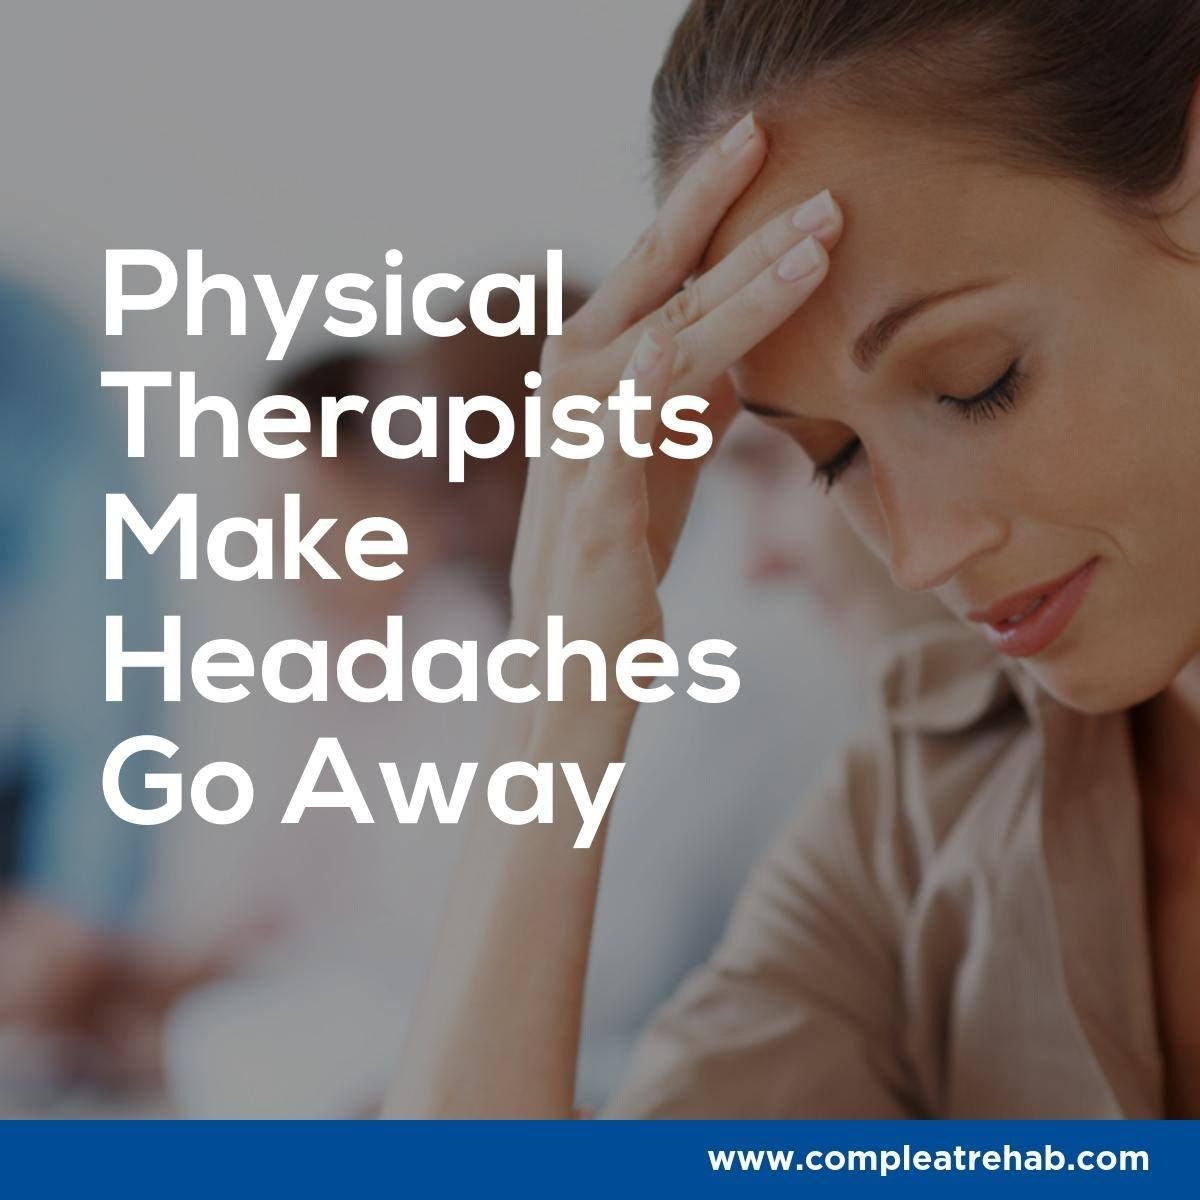 Physical therapists make headaches go away! Find out how